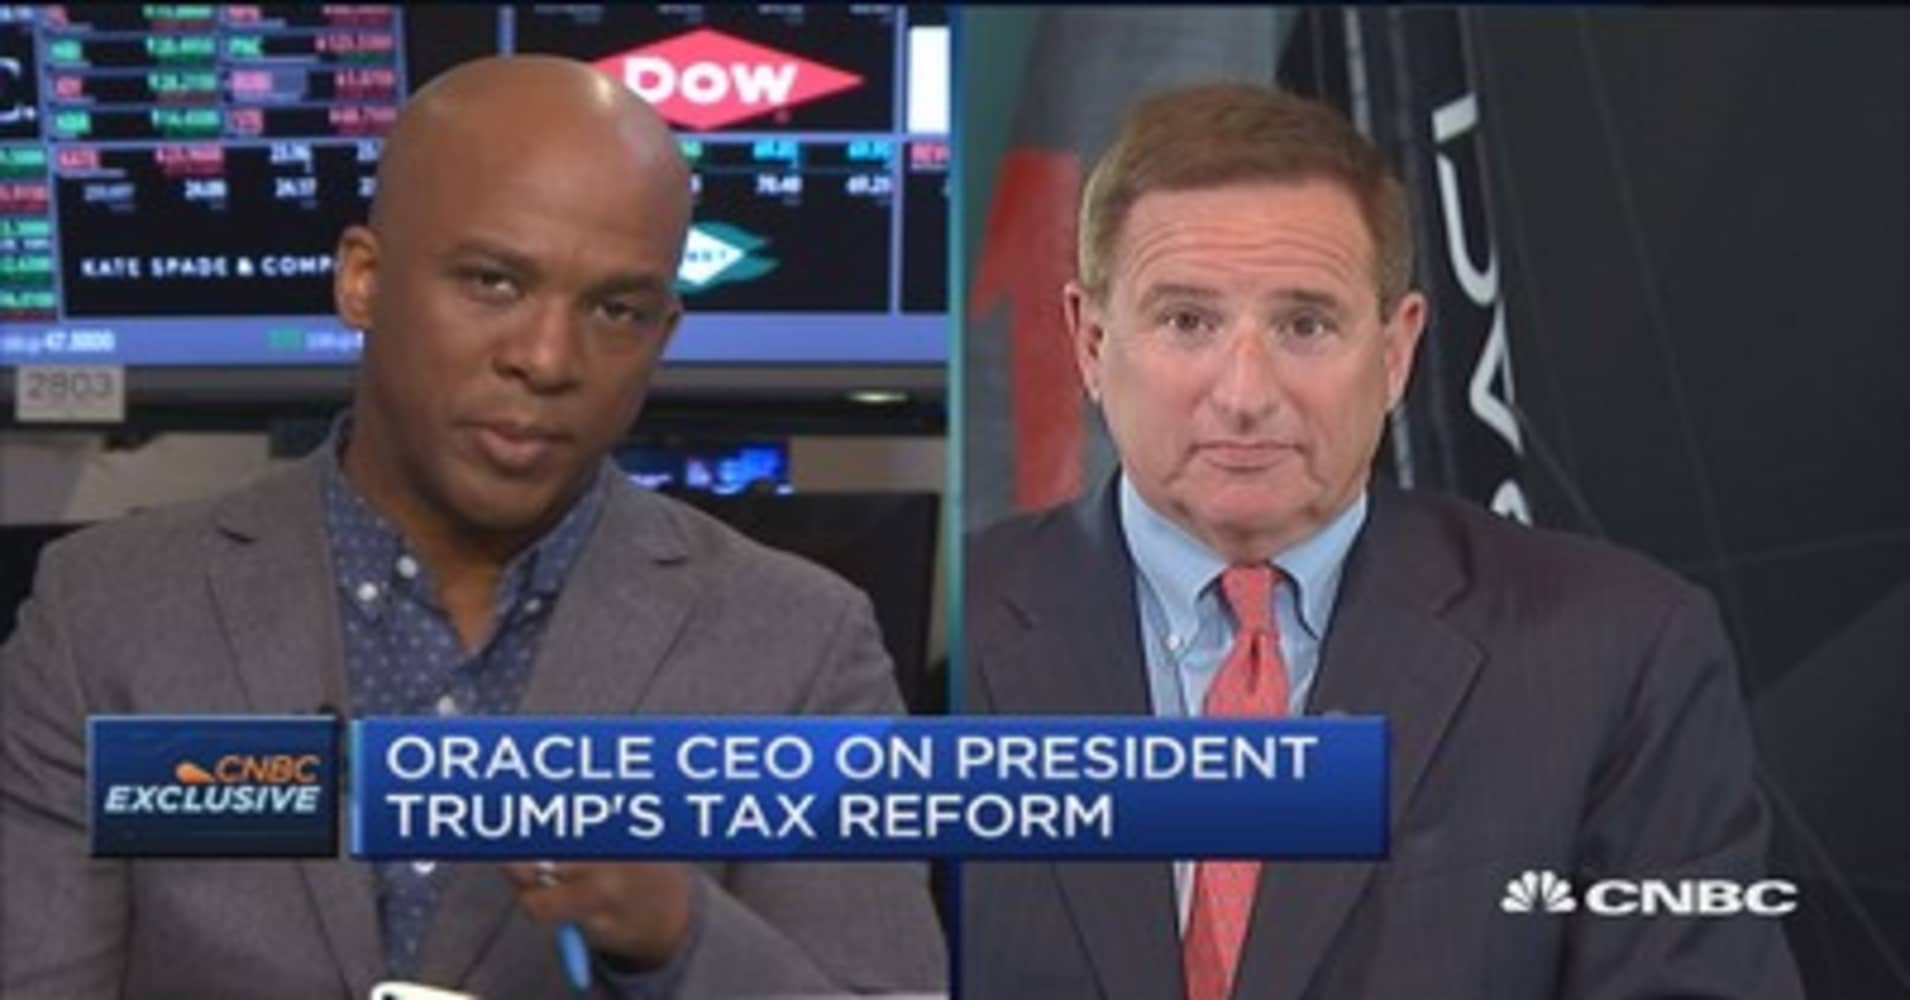 Oracle's Hurd: Cloud shift will not result in mass layoffs